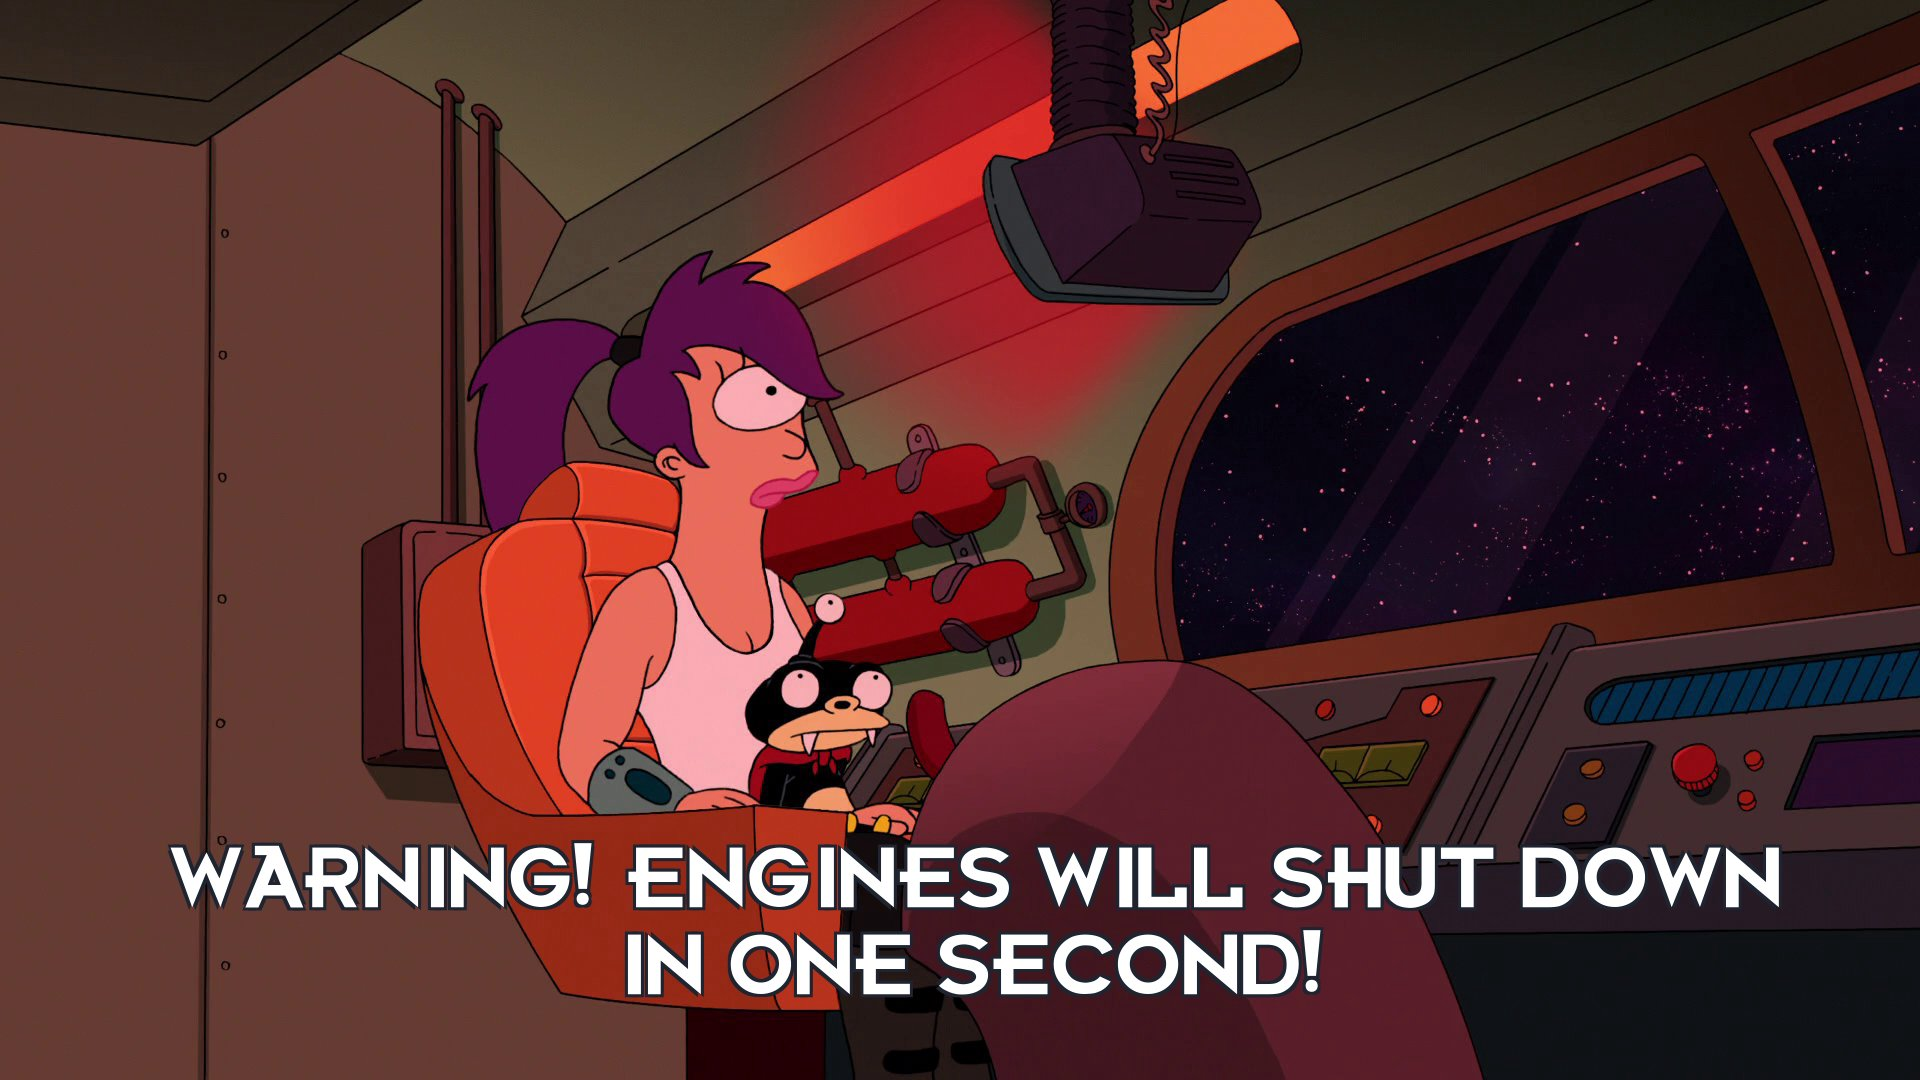 Planet Express Ship: Warning! Engines will shut down in one second!